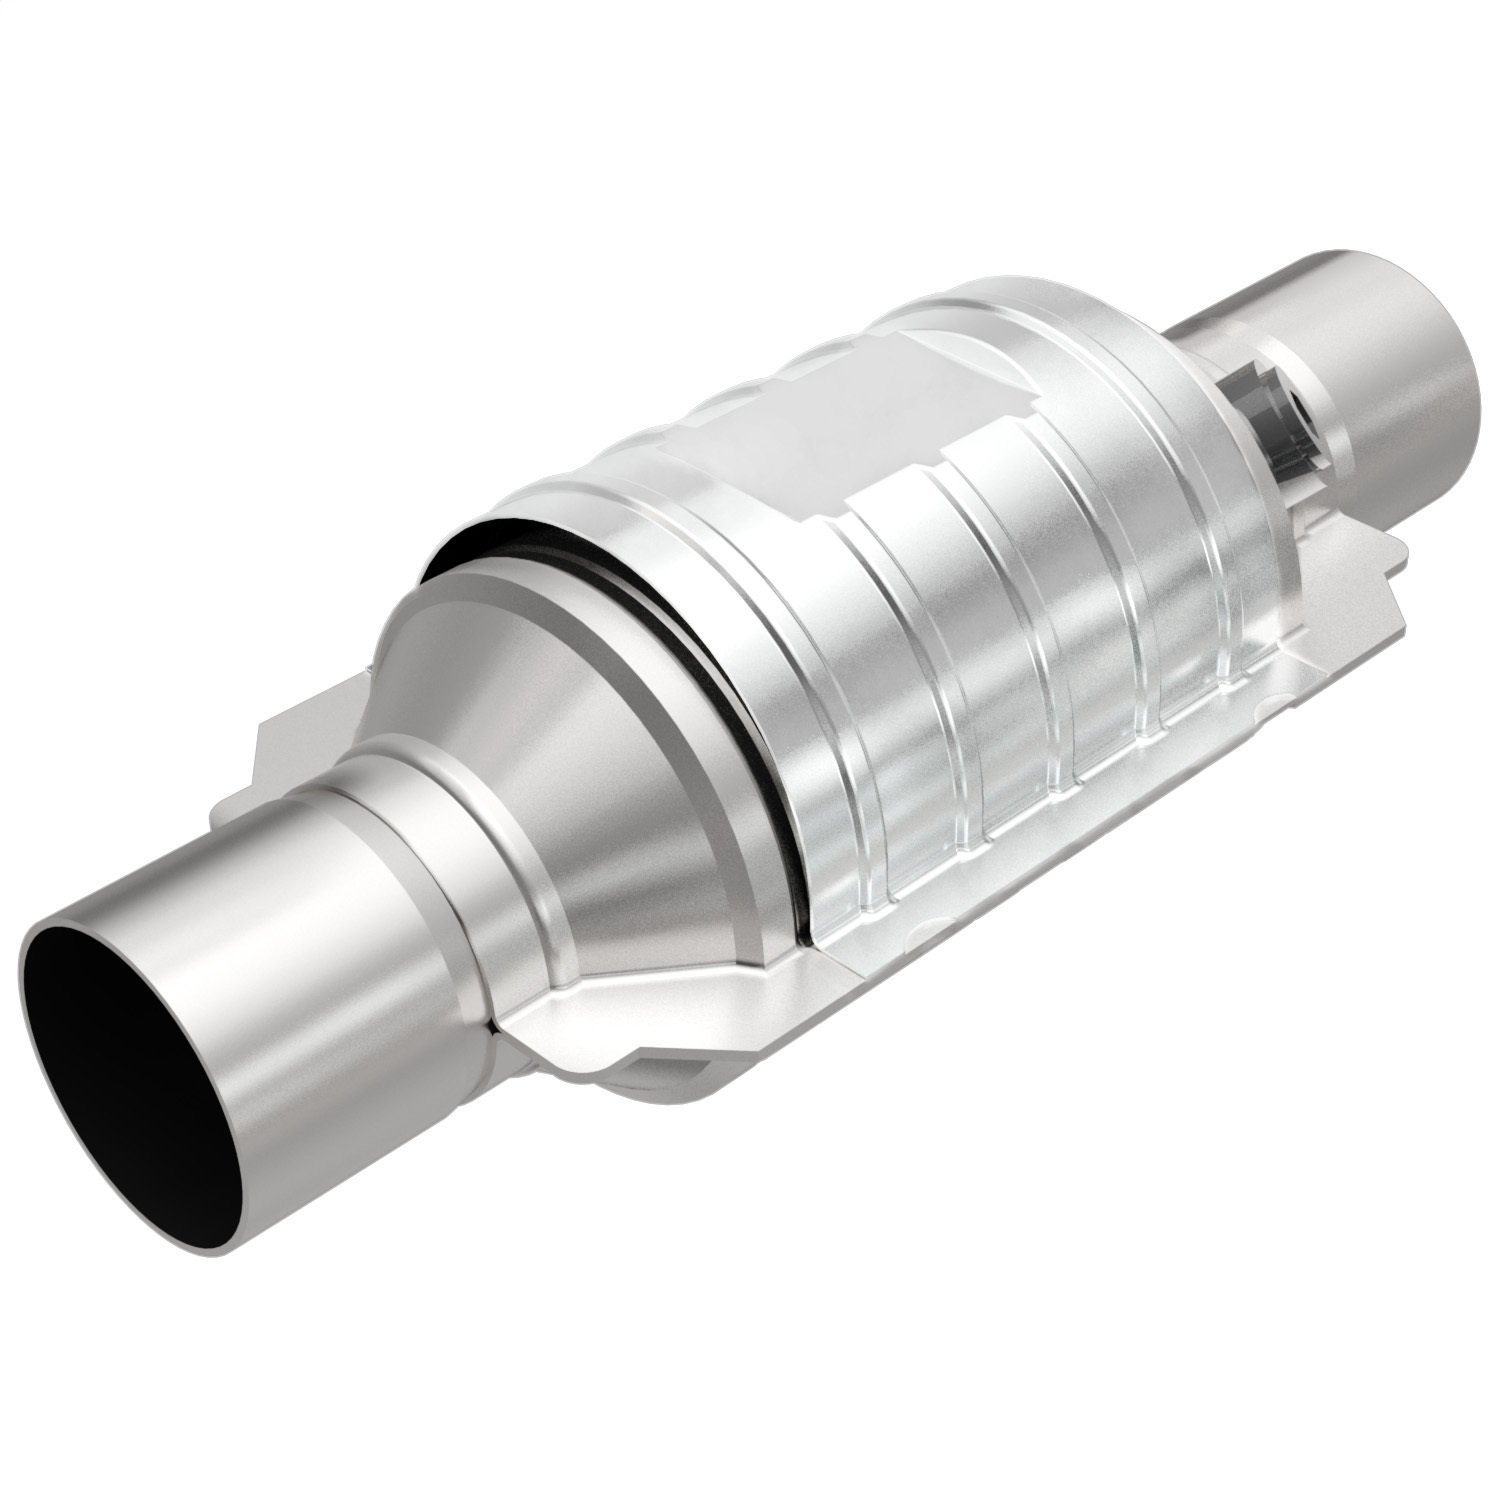 MagnaFlow 99235HM Universal Catalytic Converter (Non CARB Compliant) by MagnaFlow Exhaust Products